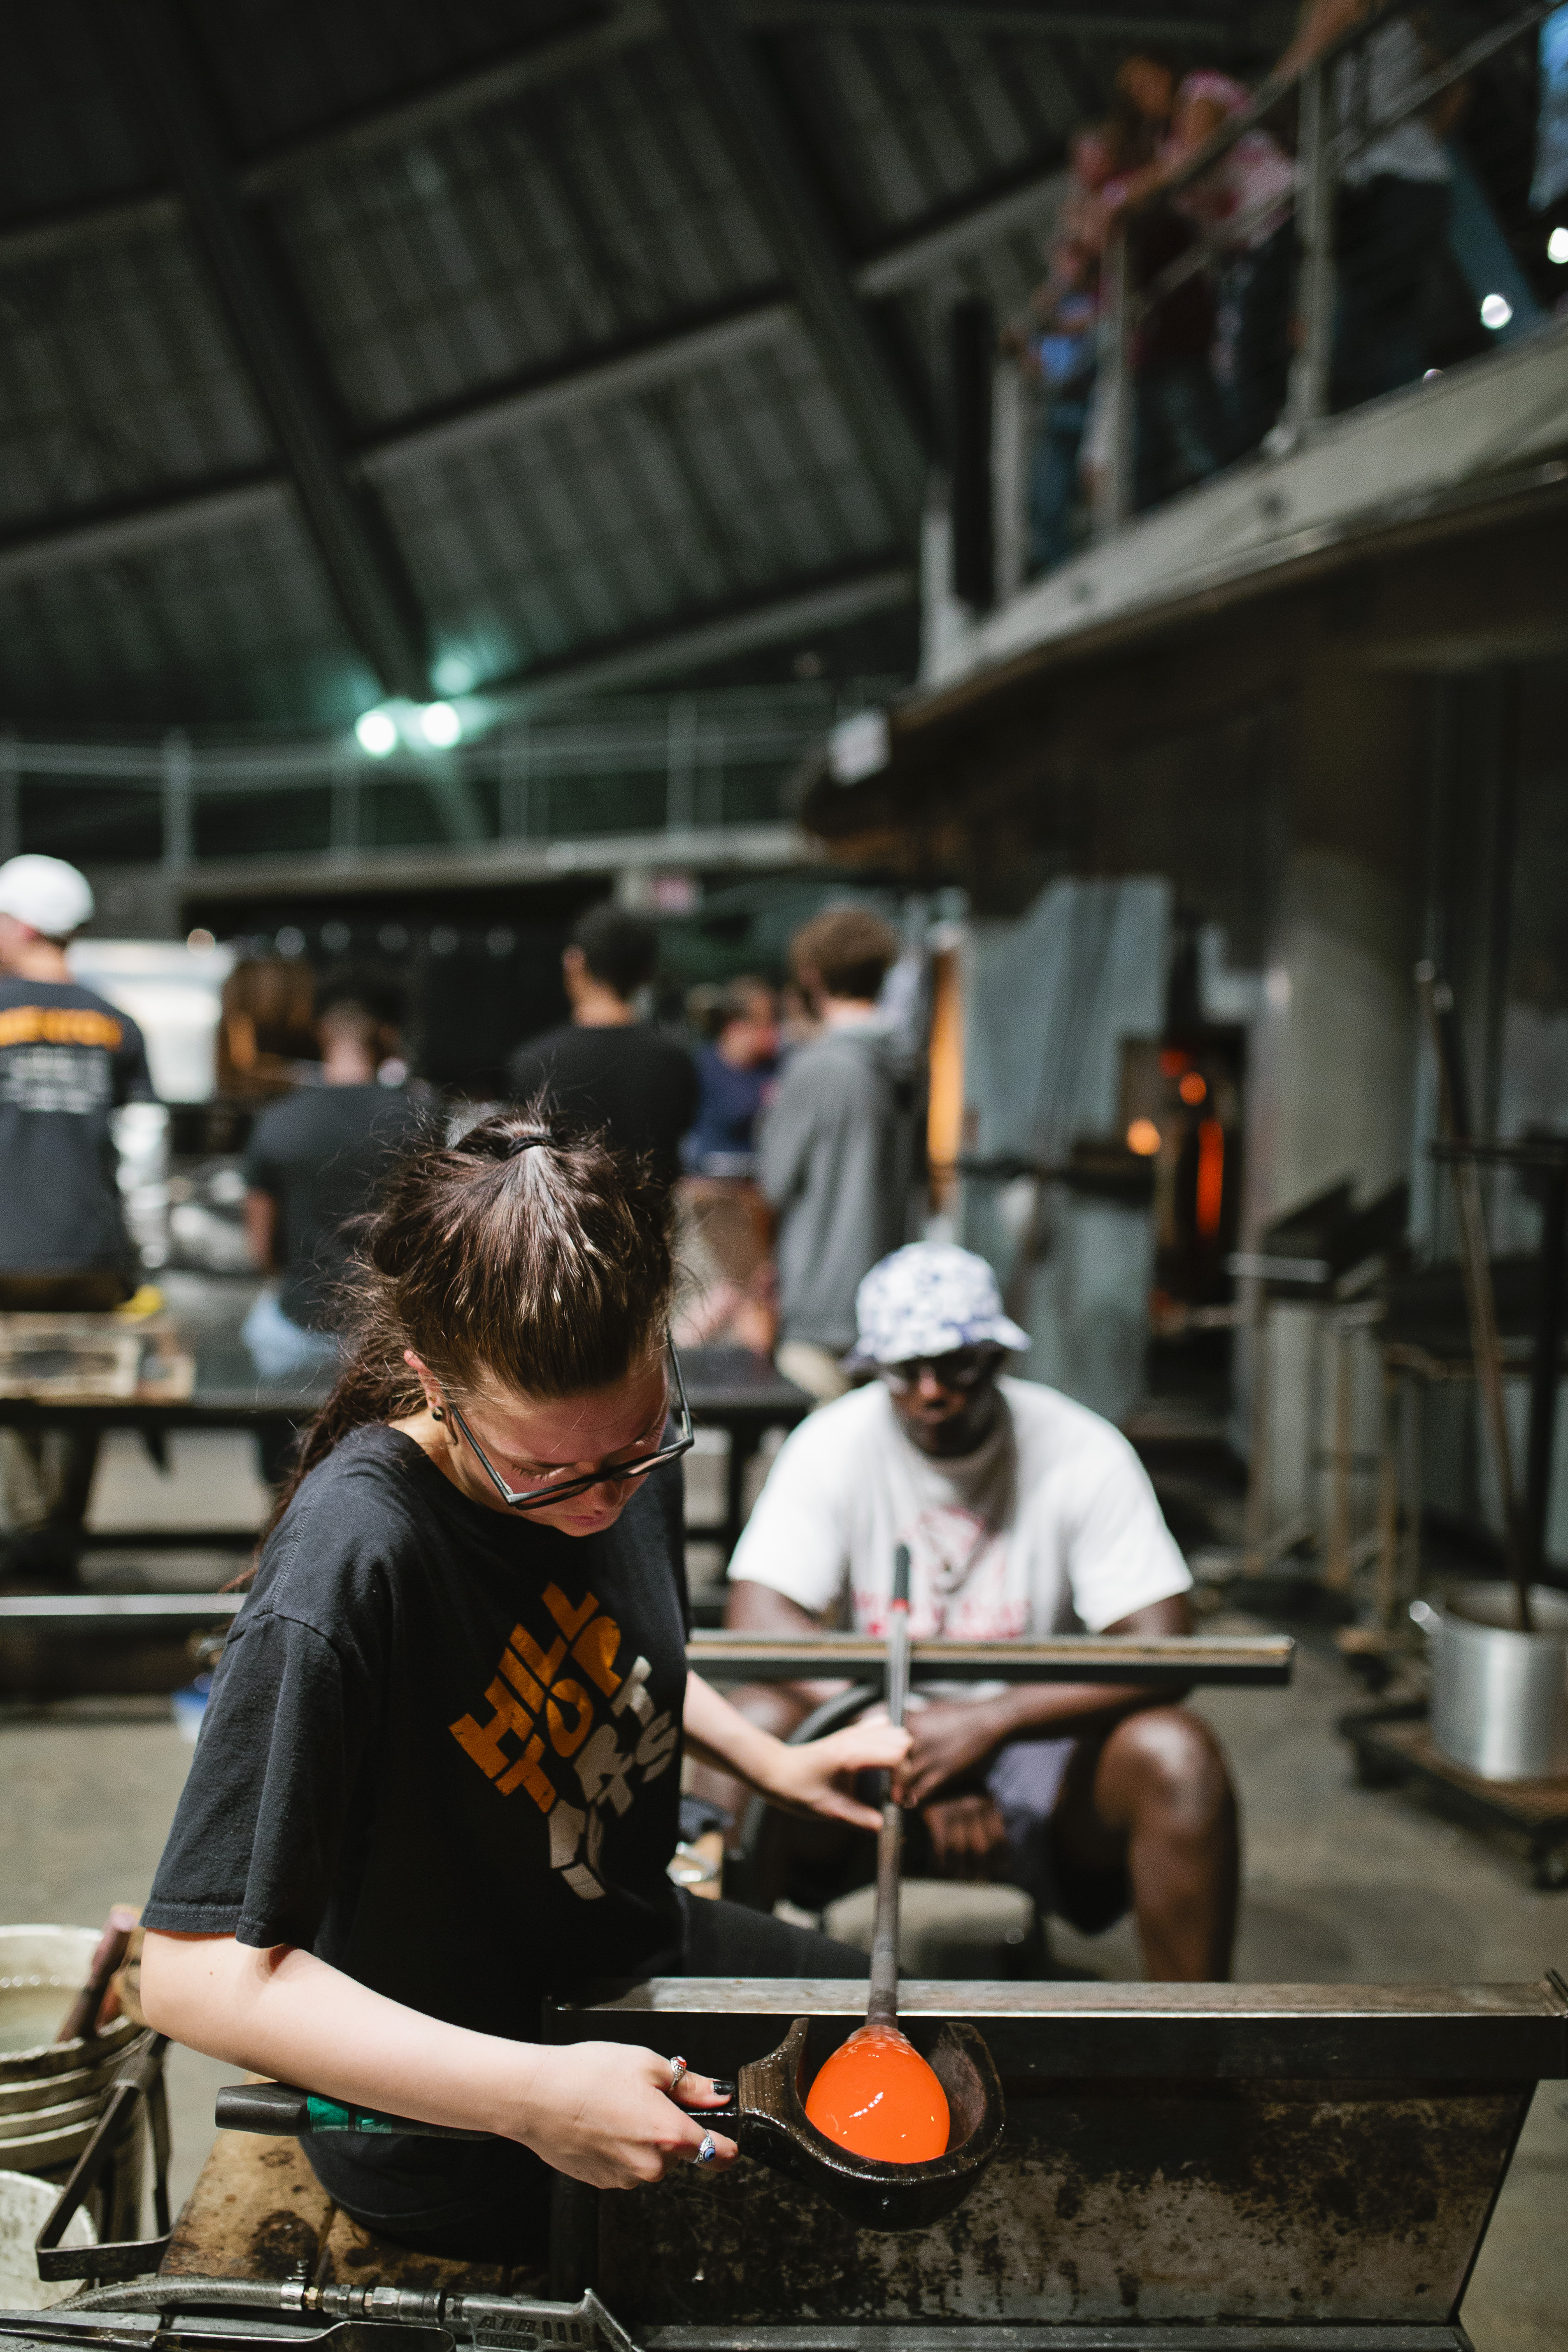 Third Thursday at Museum of Glass